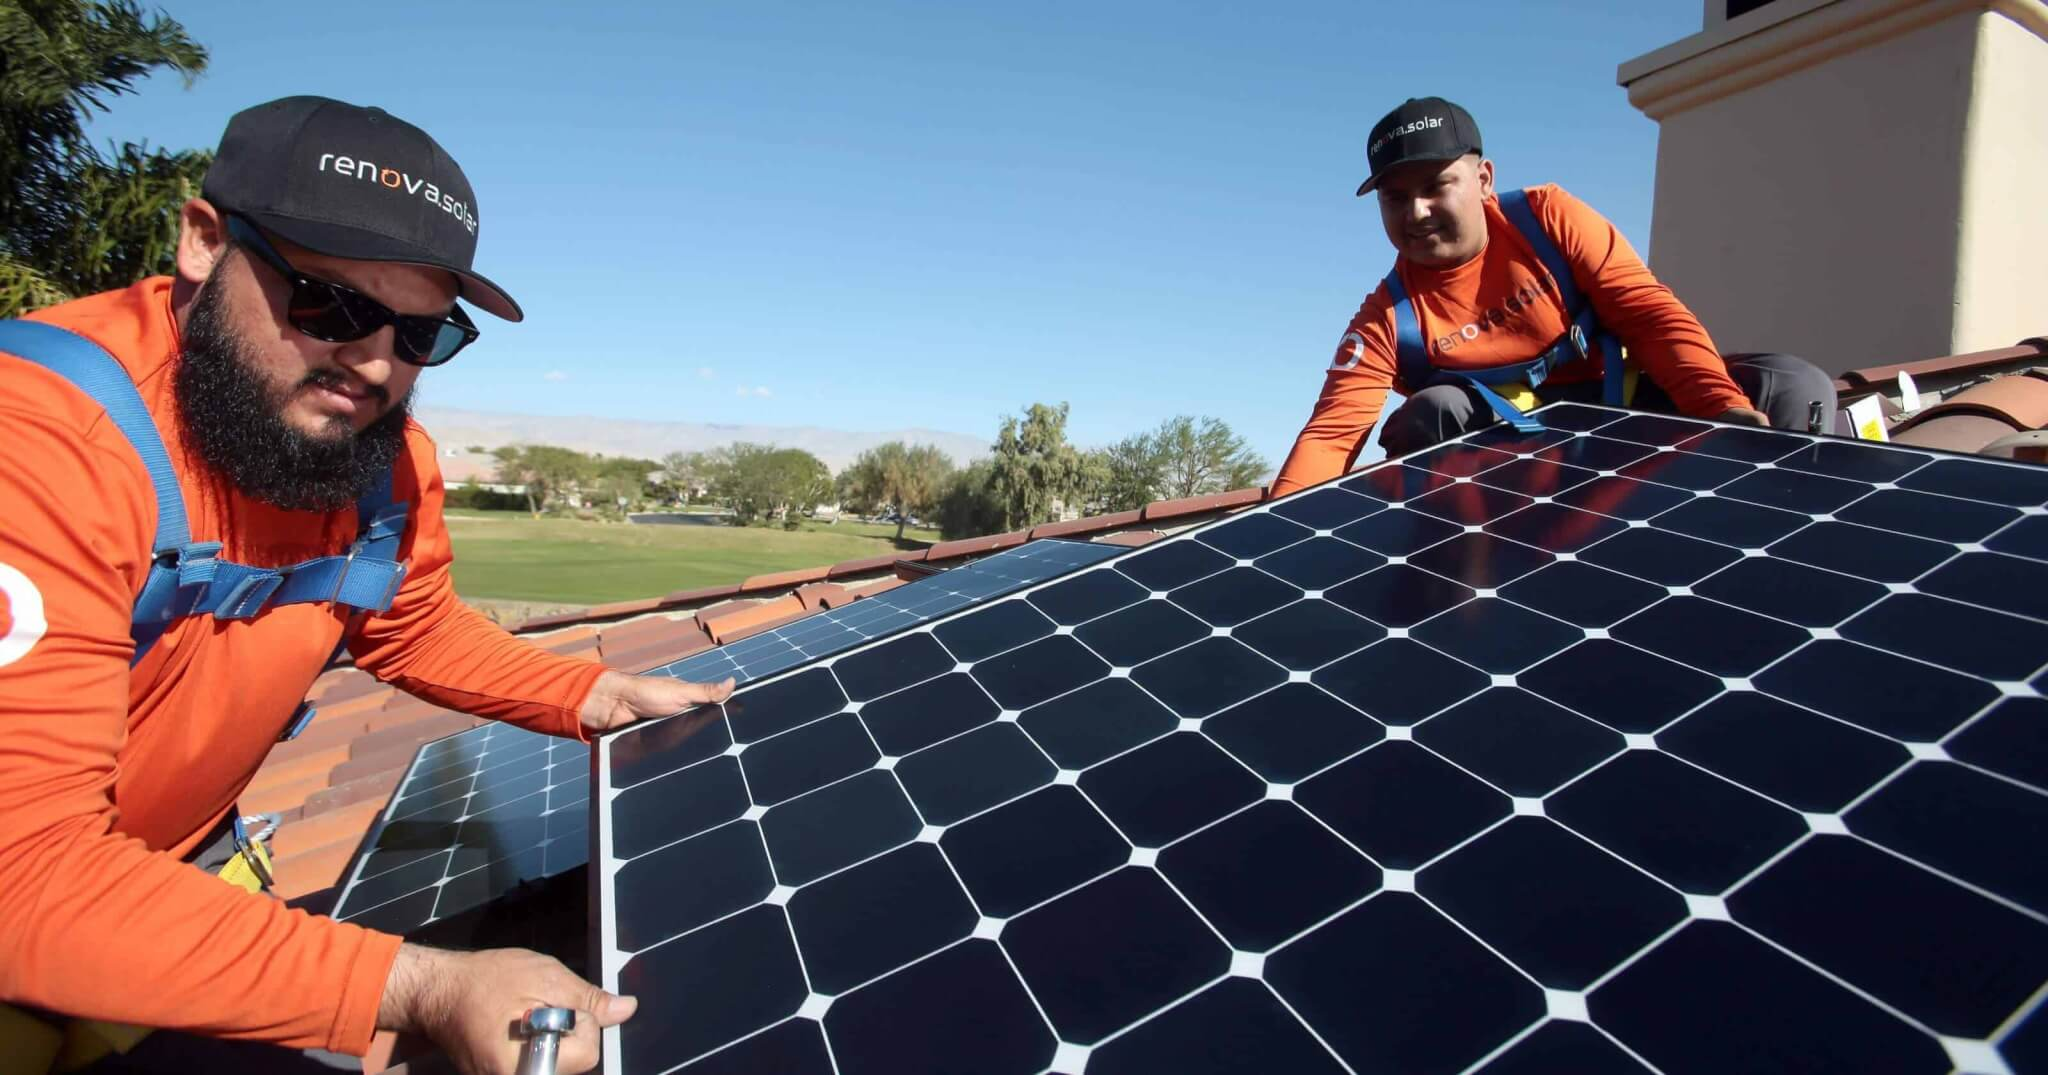 Running a Successful Local Solar Business with Vince Battaglia of Renova Solar